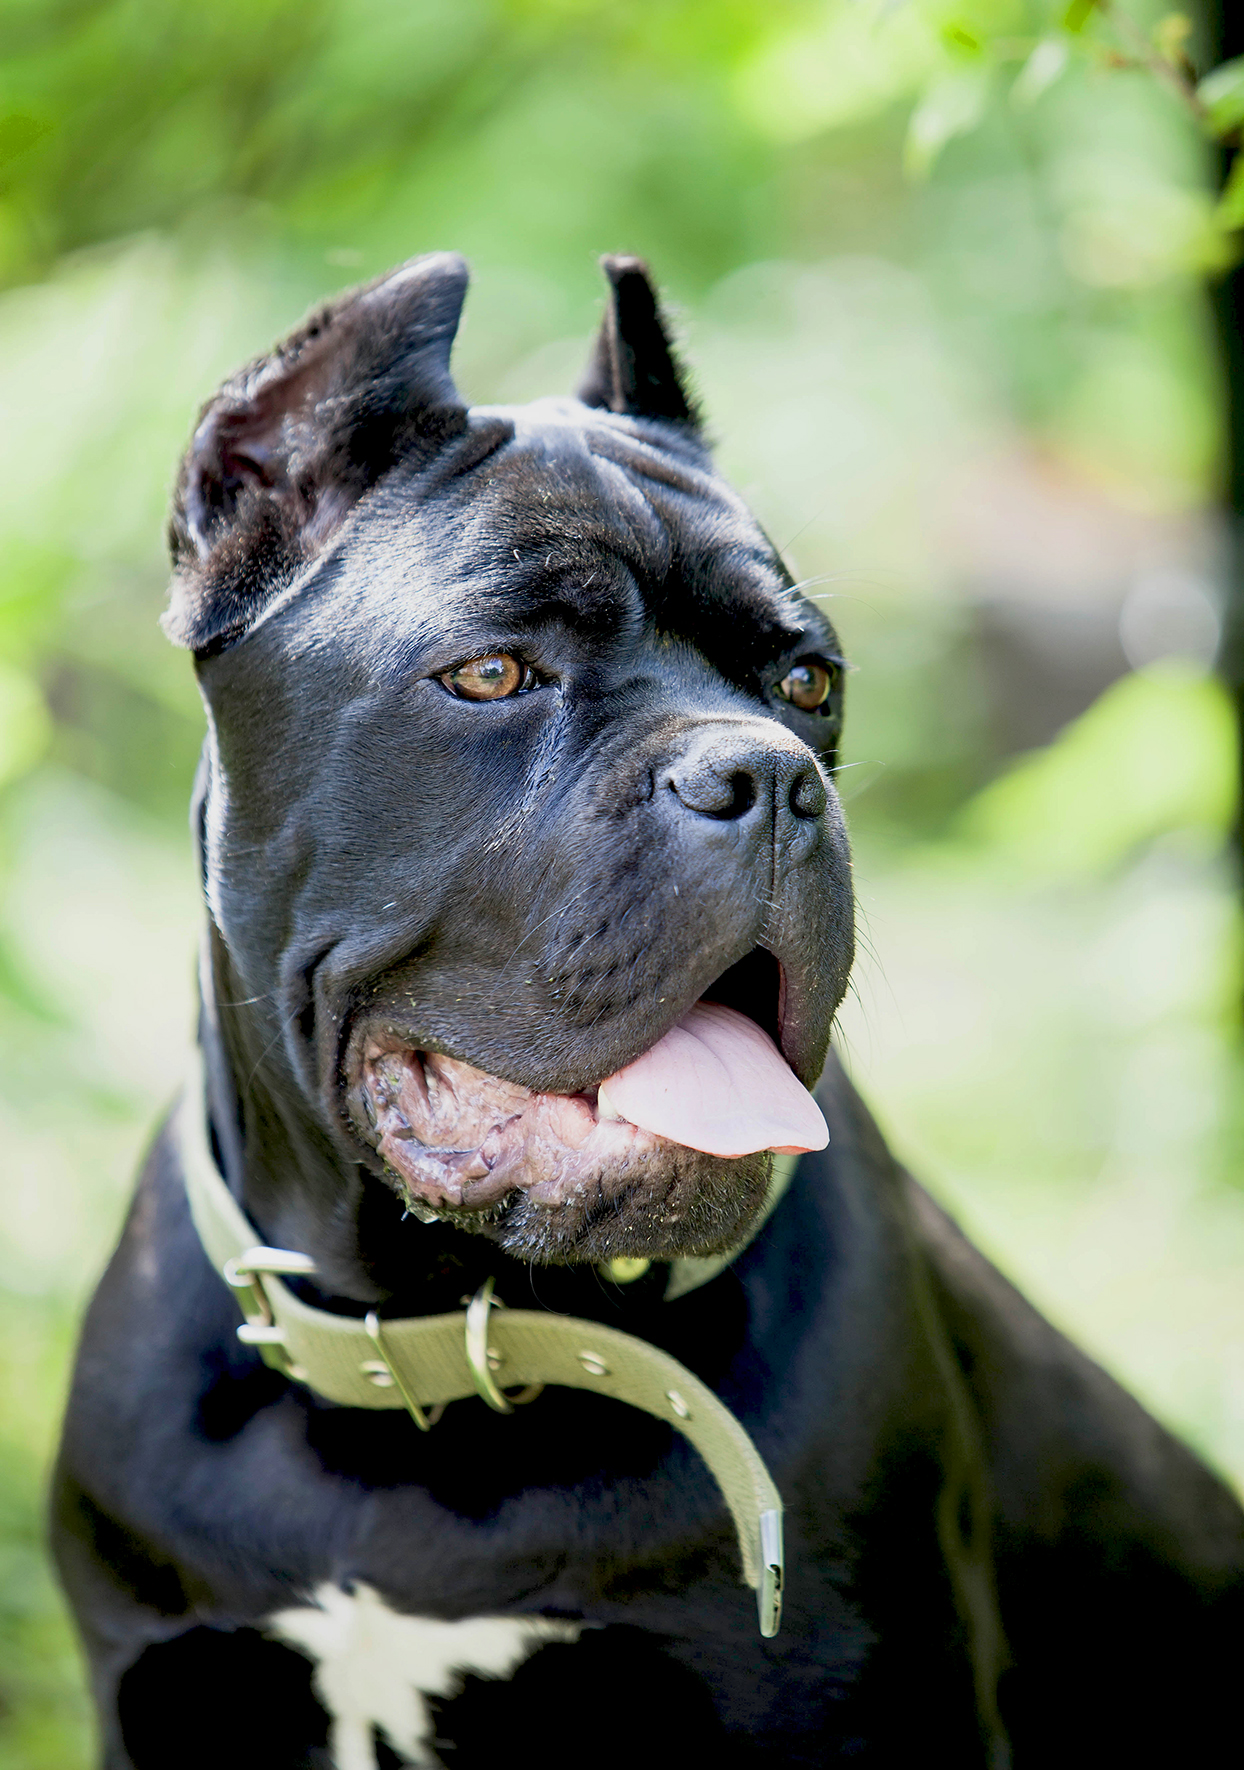 Close up portrait of black Cane Corso with green collar